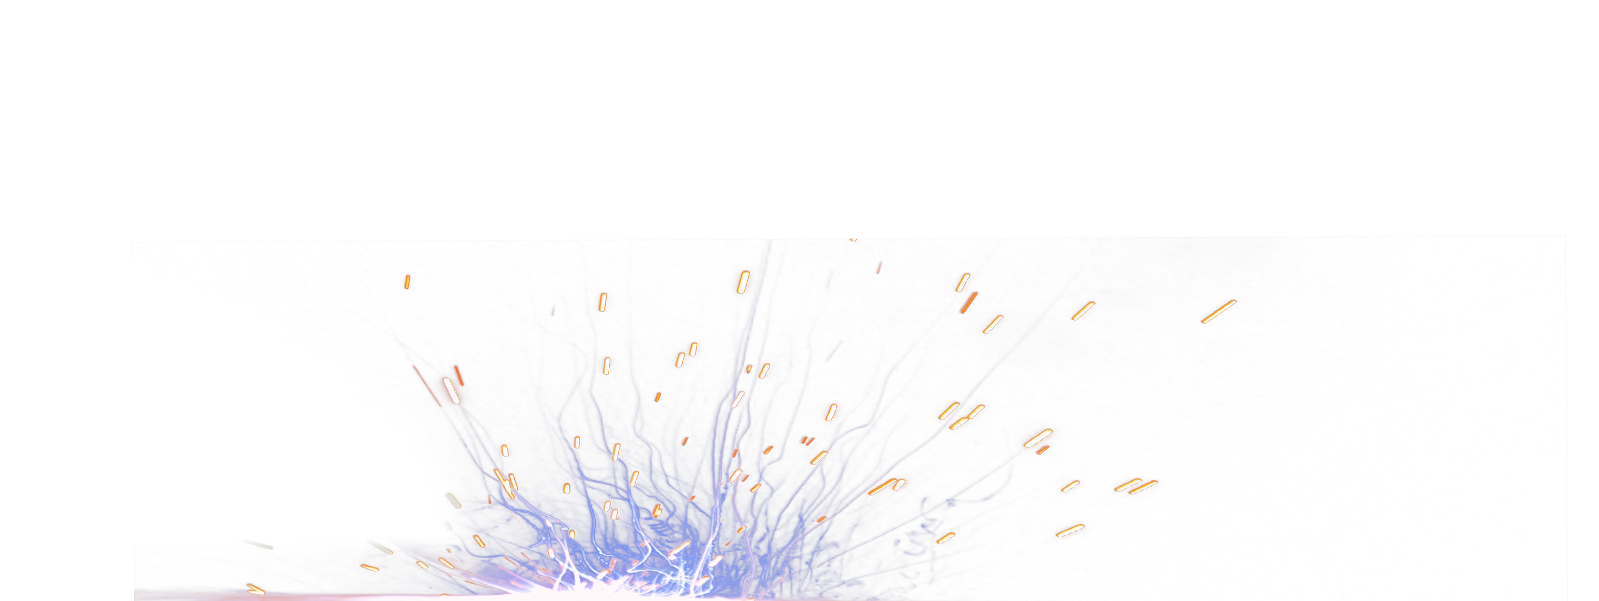 Electric sparks png. Loadtve